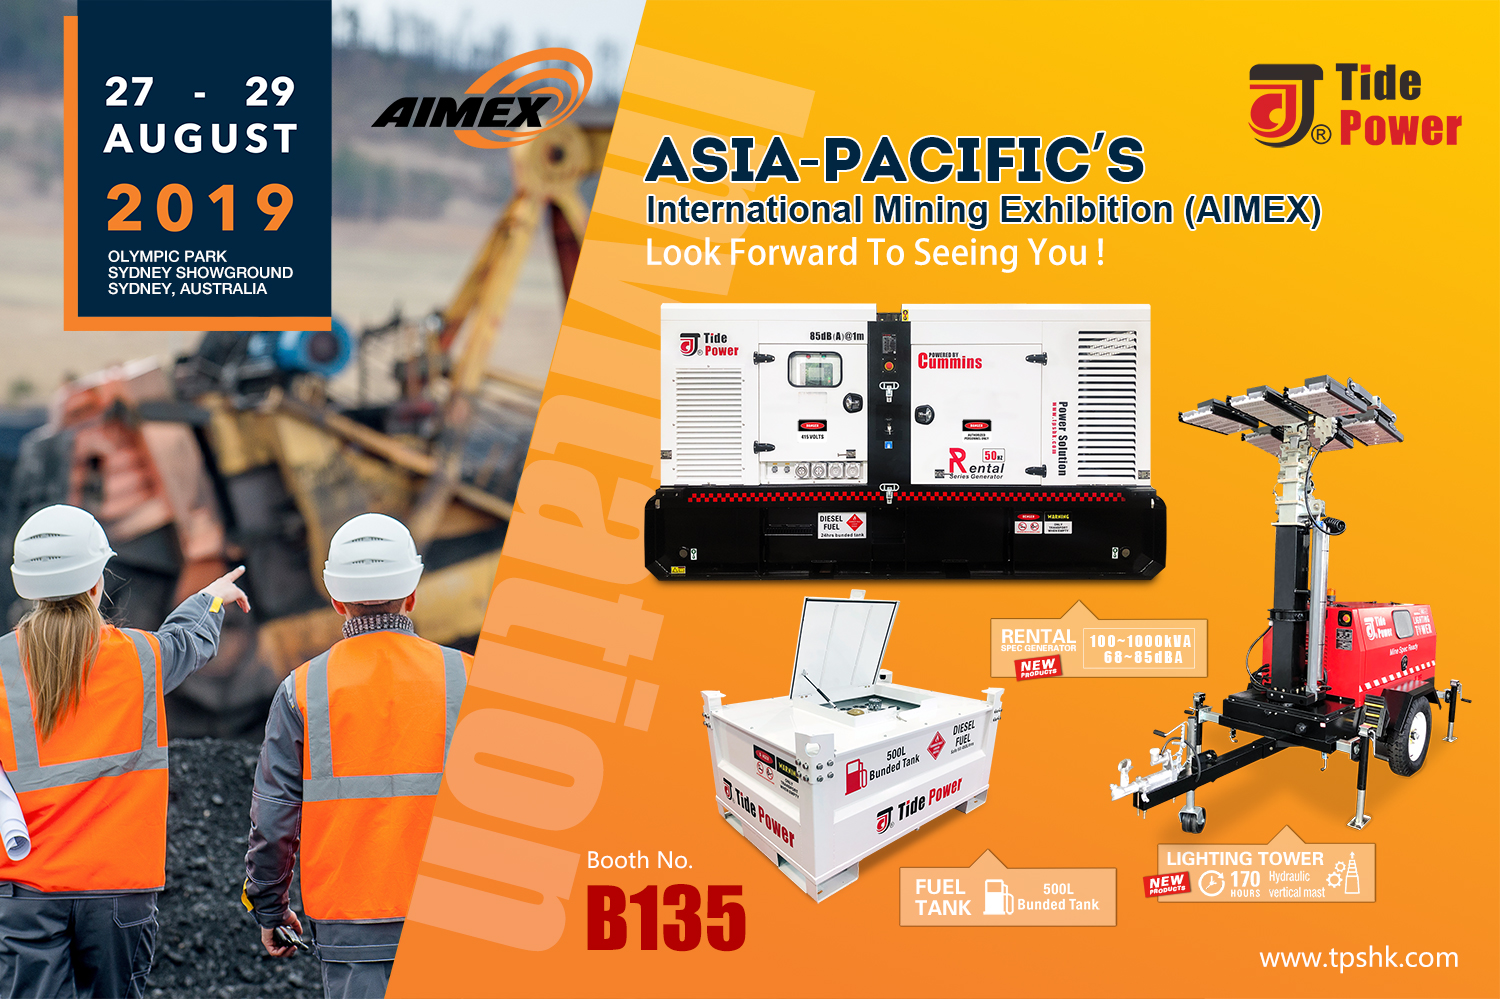 The ASIA-PACIFIC'S International Mining Exhibition Invitation